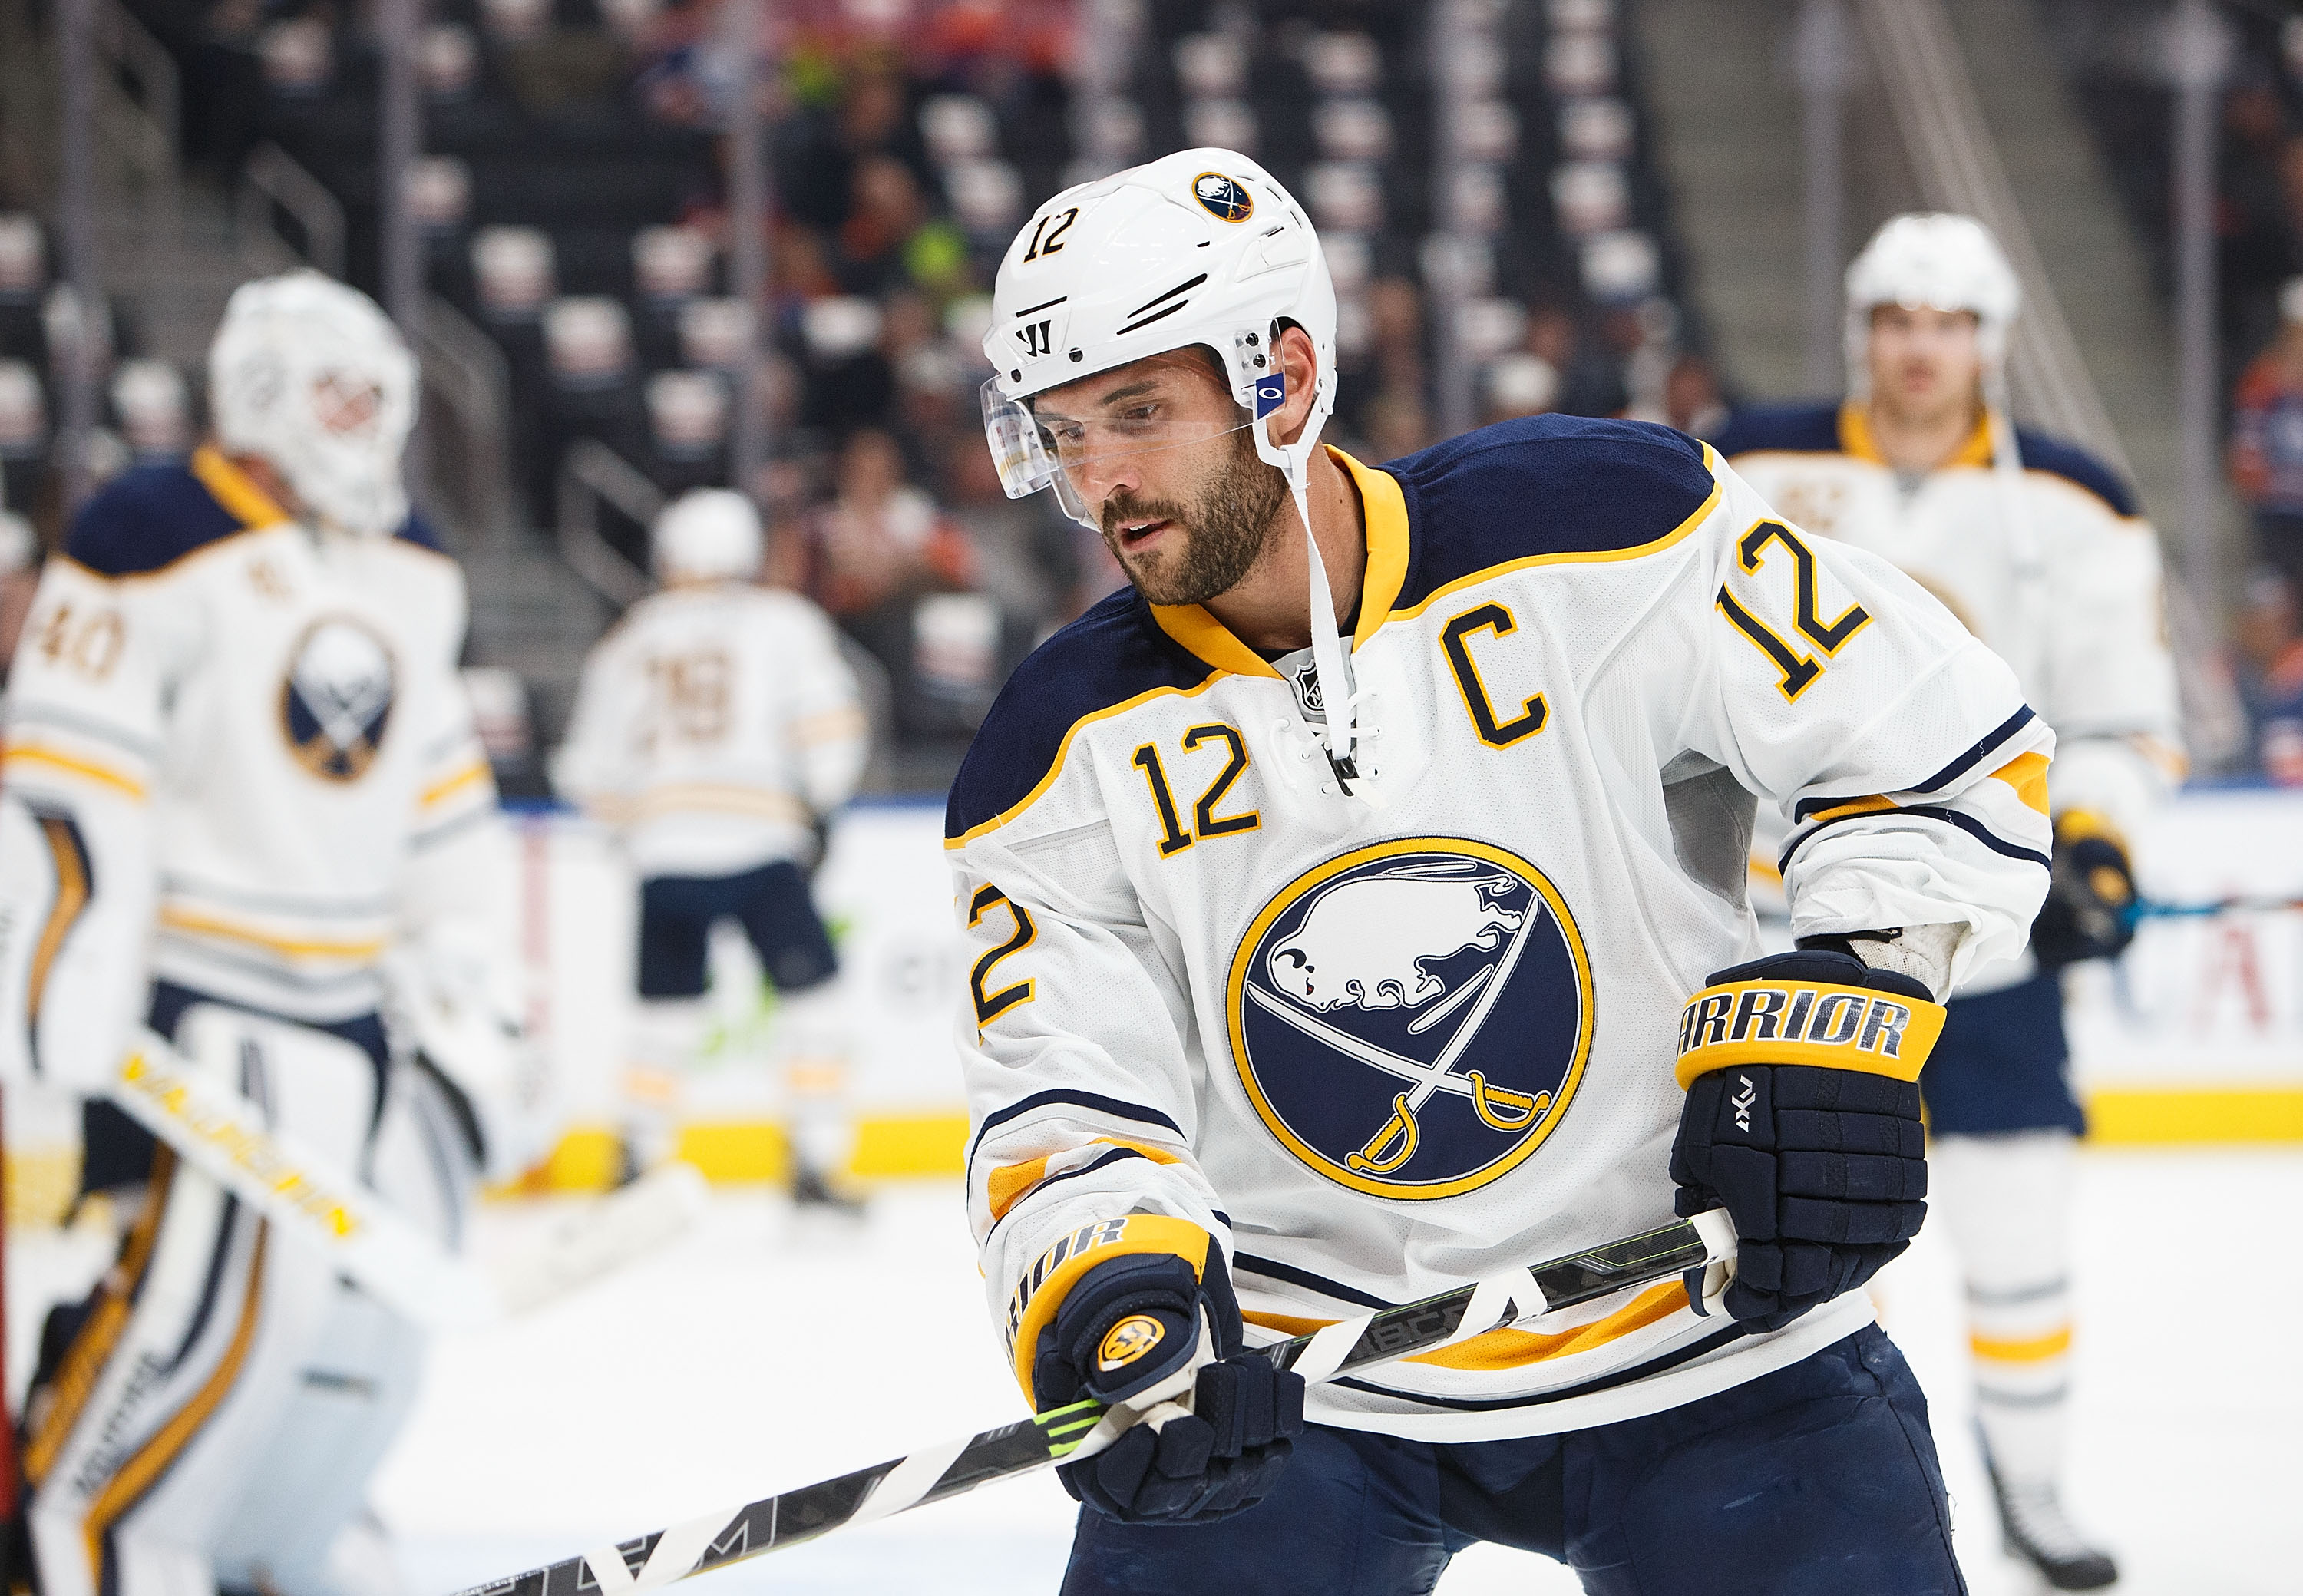 Brian Gionta can be traded, but he wants to finish the rebuild he started with Sabres. (Getty Images)